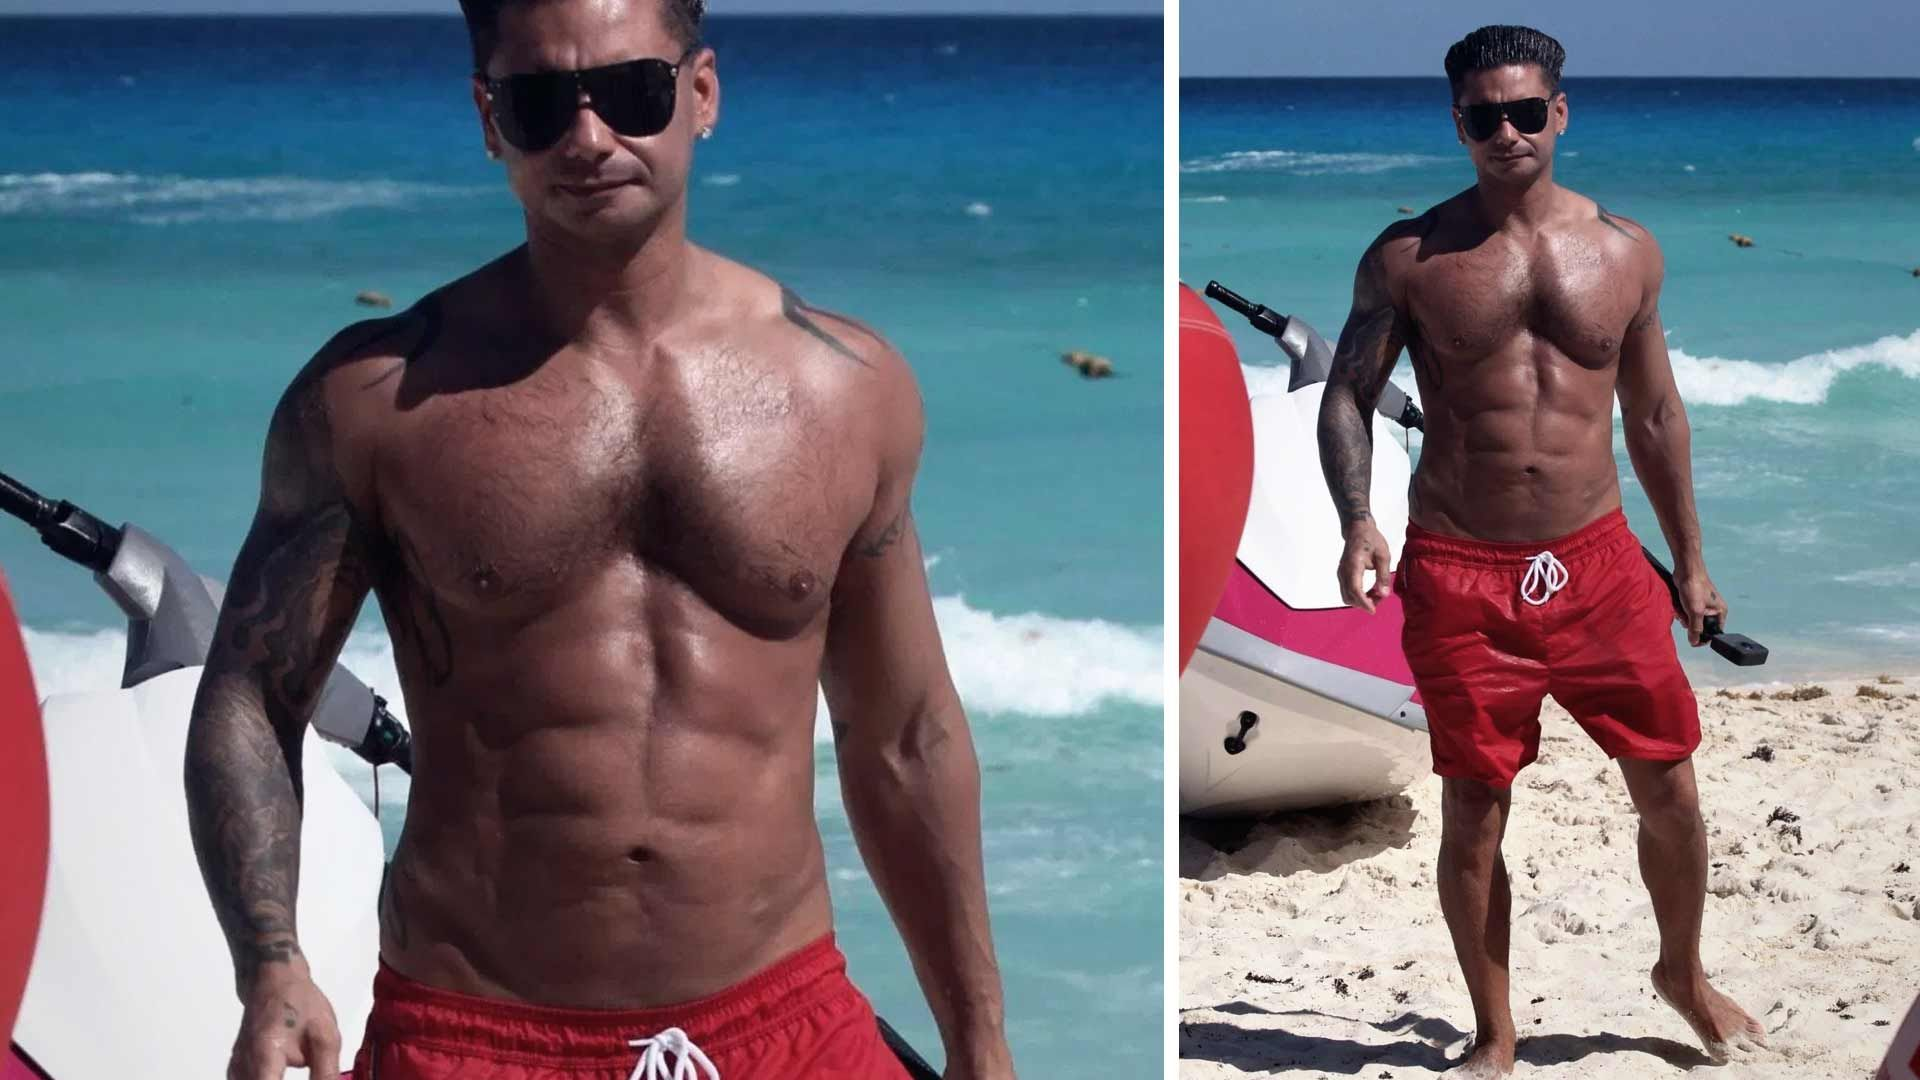 Jersey Shore' Star Pauly D Gets Abs-olutely Shredded from